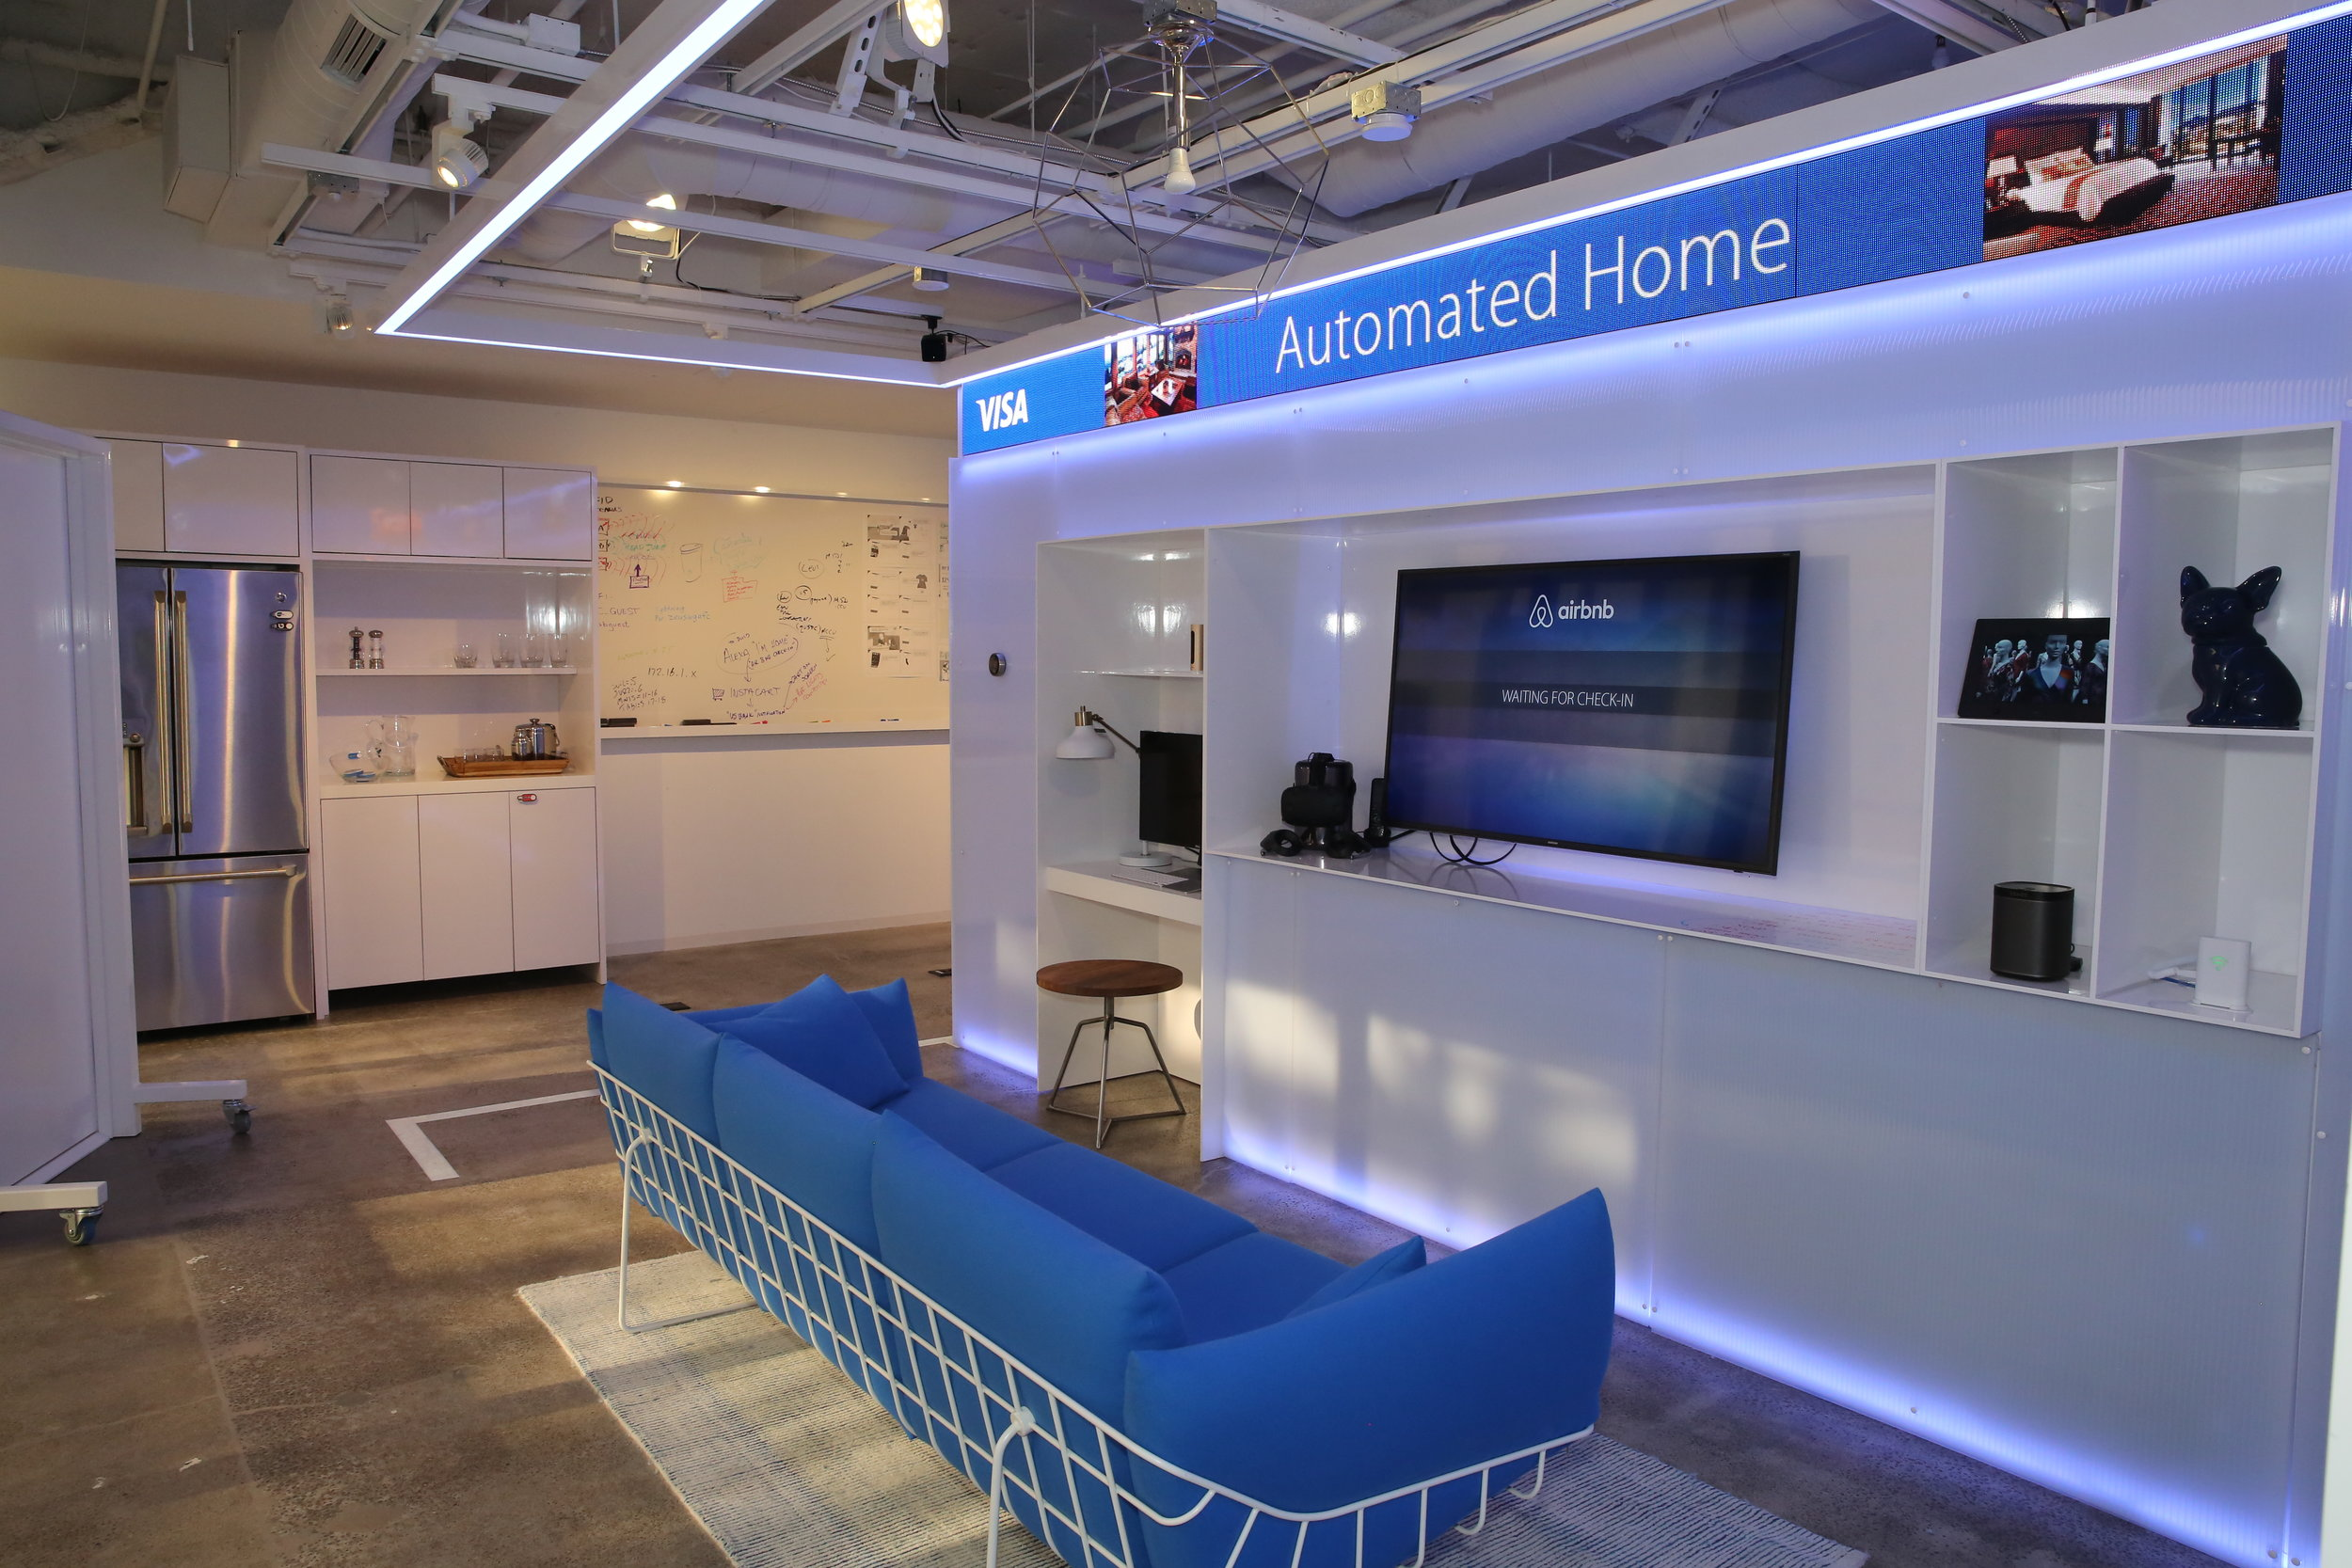 Our work at Visa's San Francisco Innovation Center showcases the future of intrinsic payments. As appliances and devices independently manage an even greater number of everyday transactions, brands will need to reconsider their role in the ecosystem of the automated home.